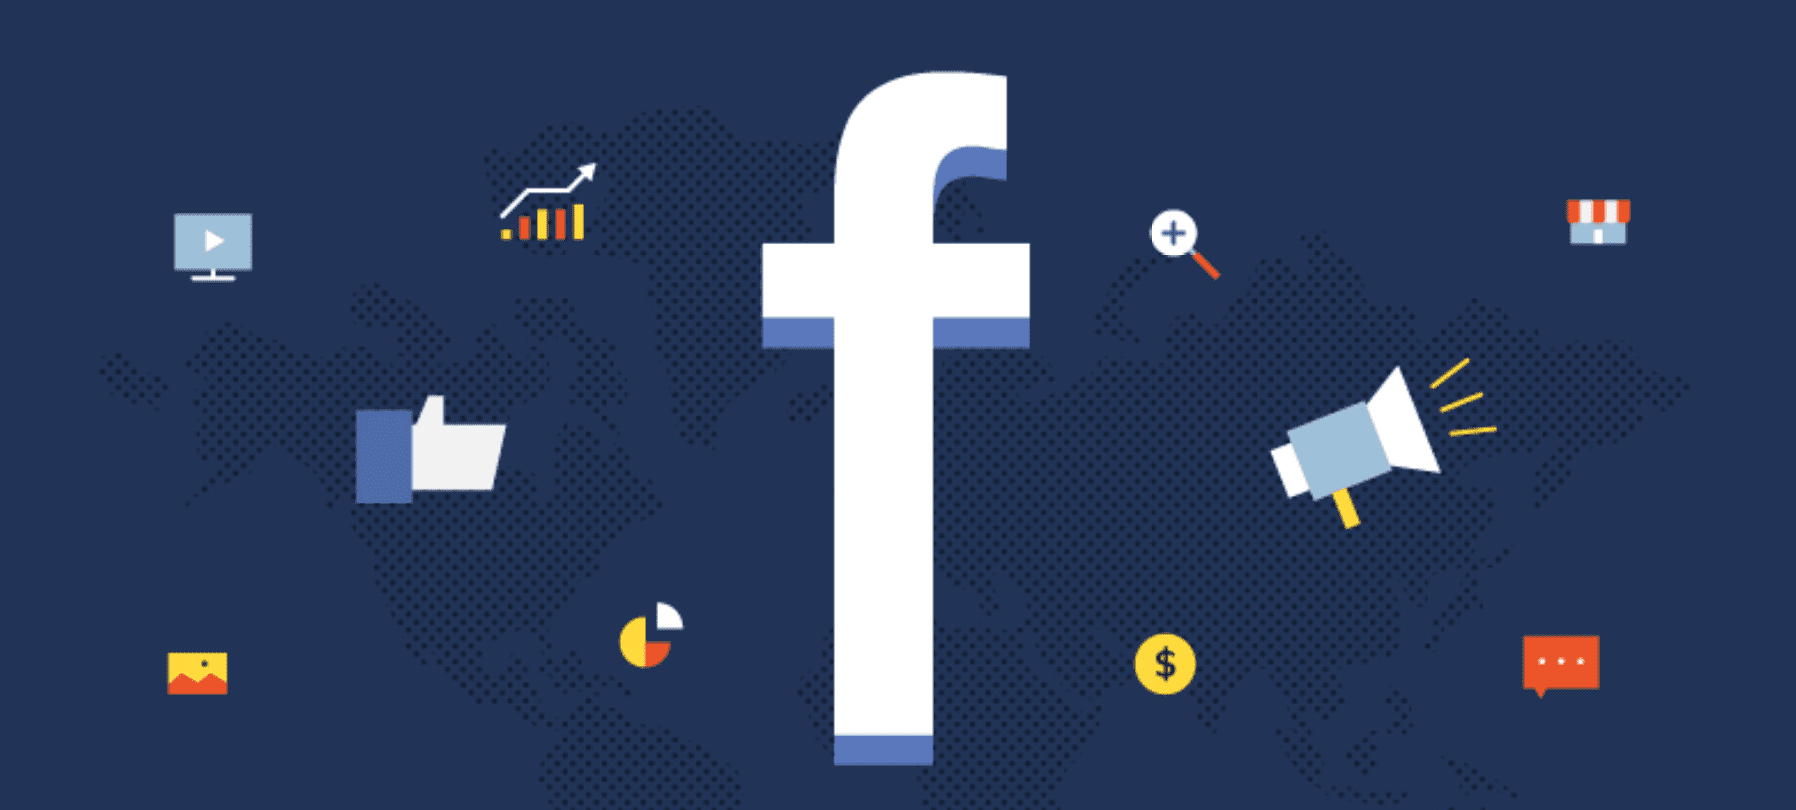 Facebook symbol on blue background surrounded by various marketing and communications icons; graphic courtesy of the author.